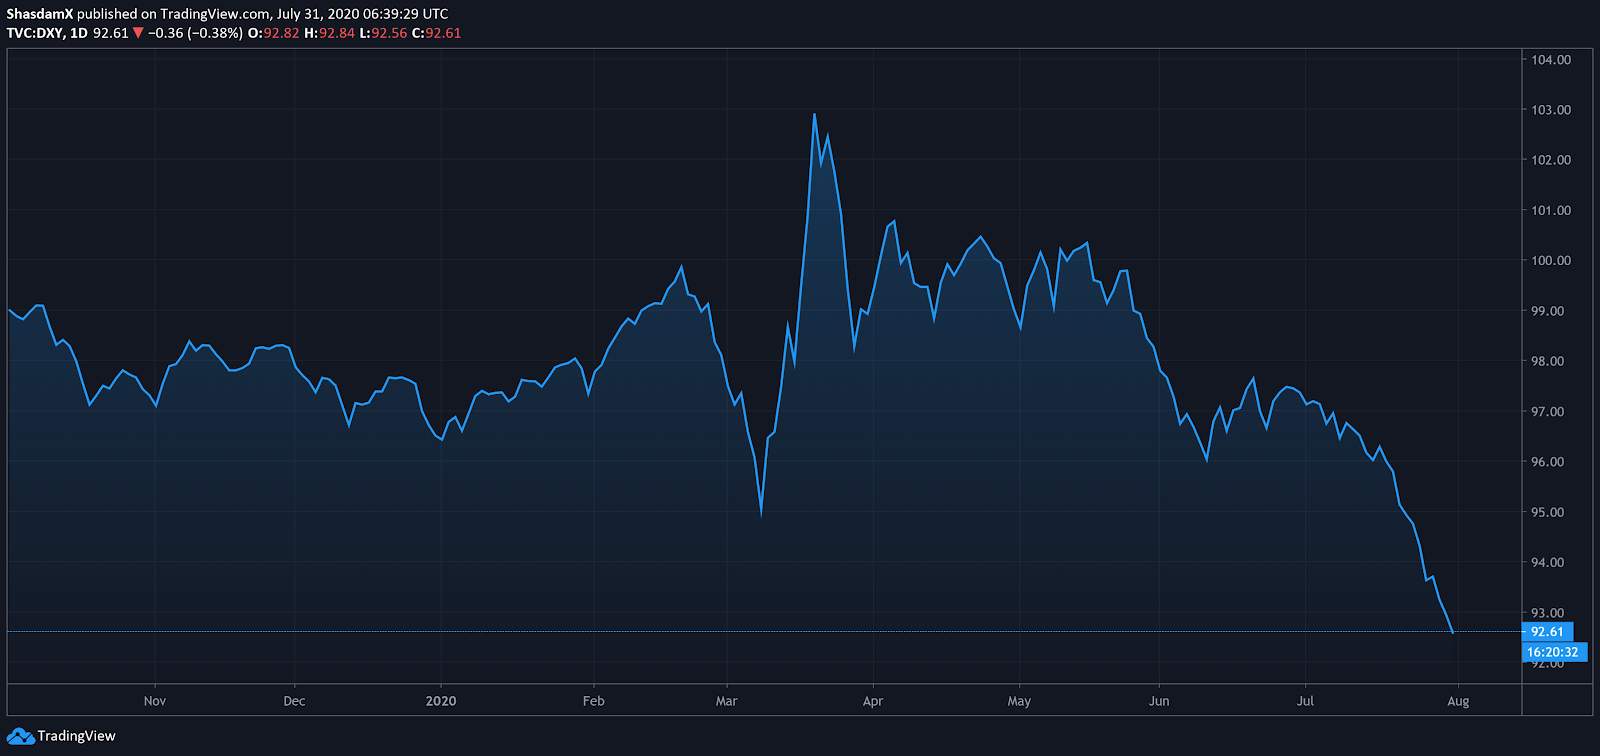 U.S. Dollar Currency Index (DXY) daily chart. Source: TradingView